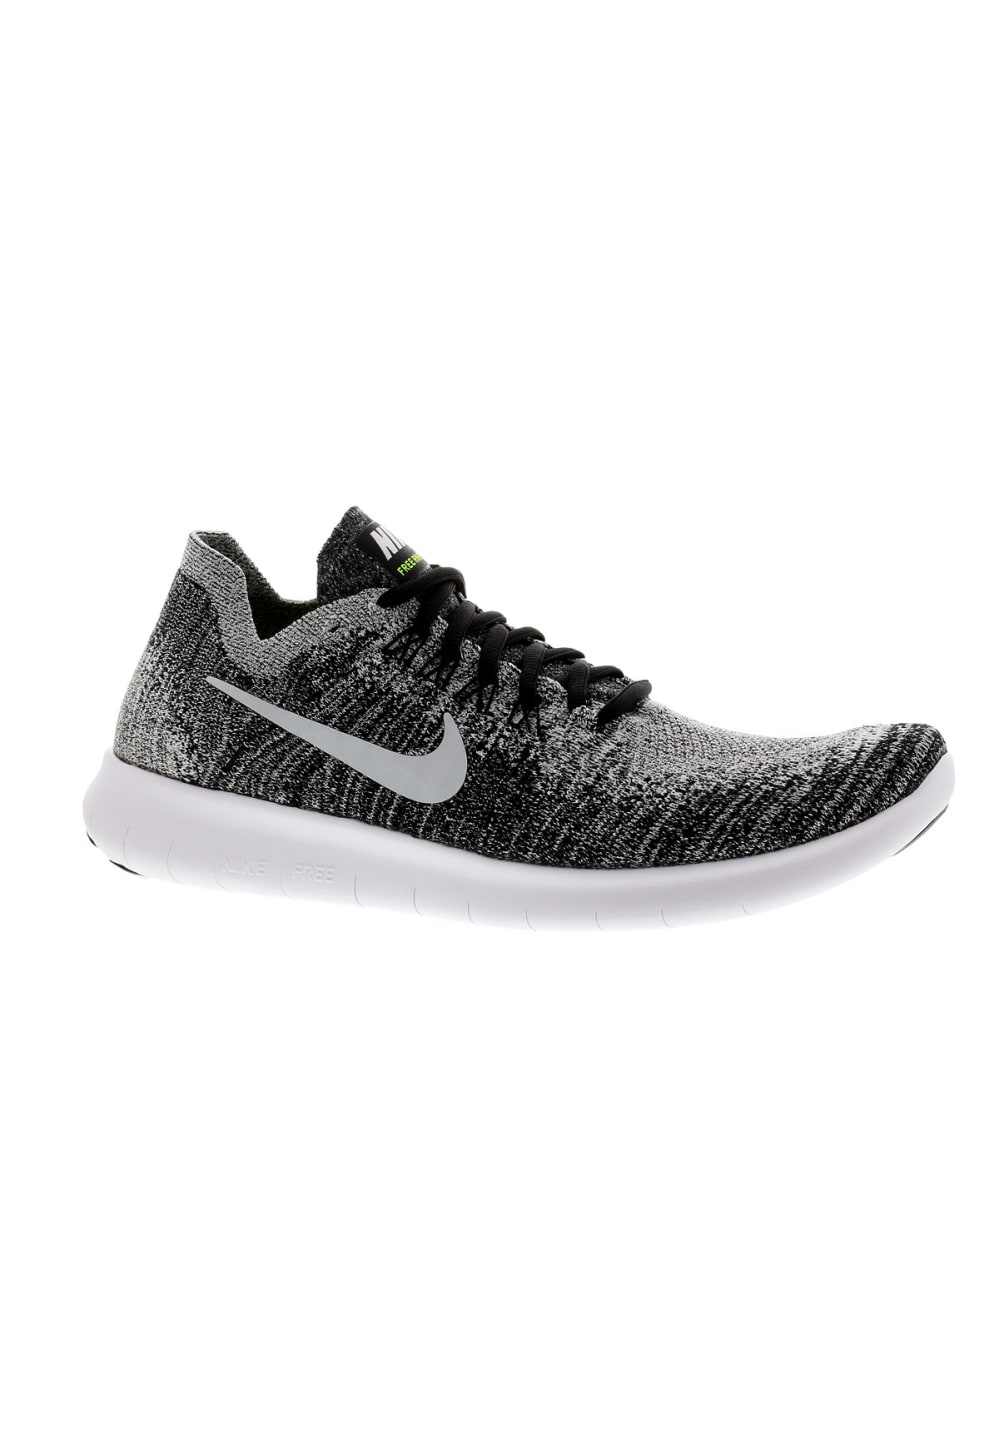 Nike Free RN Flyknit 2017 Chaussures running pour Homme Gris